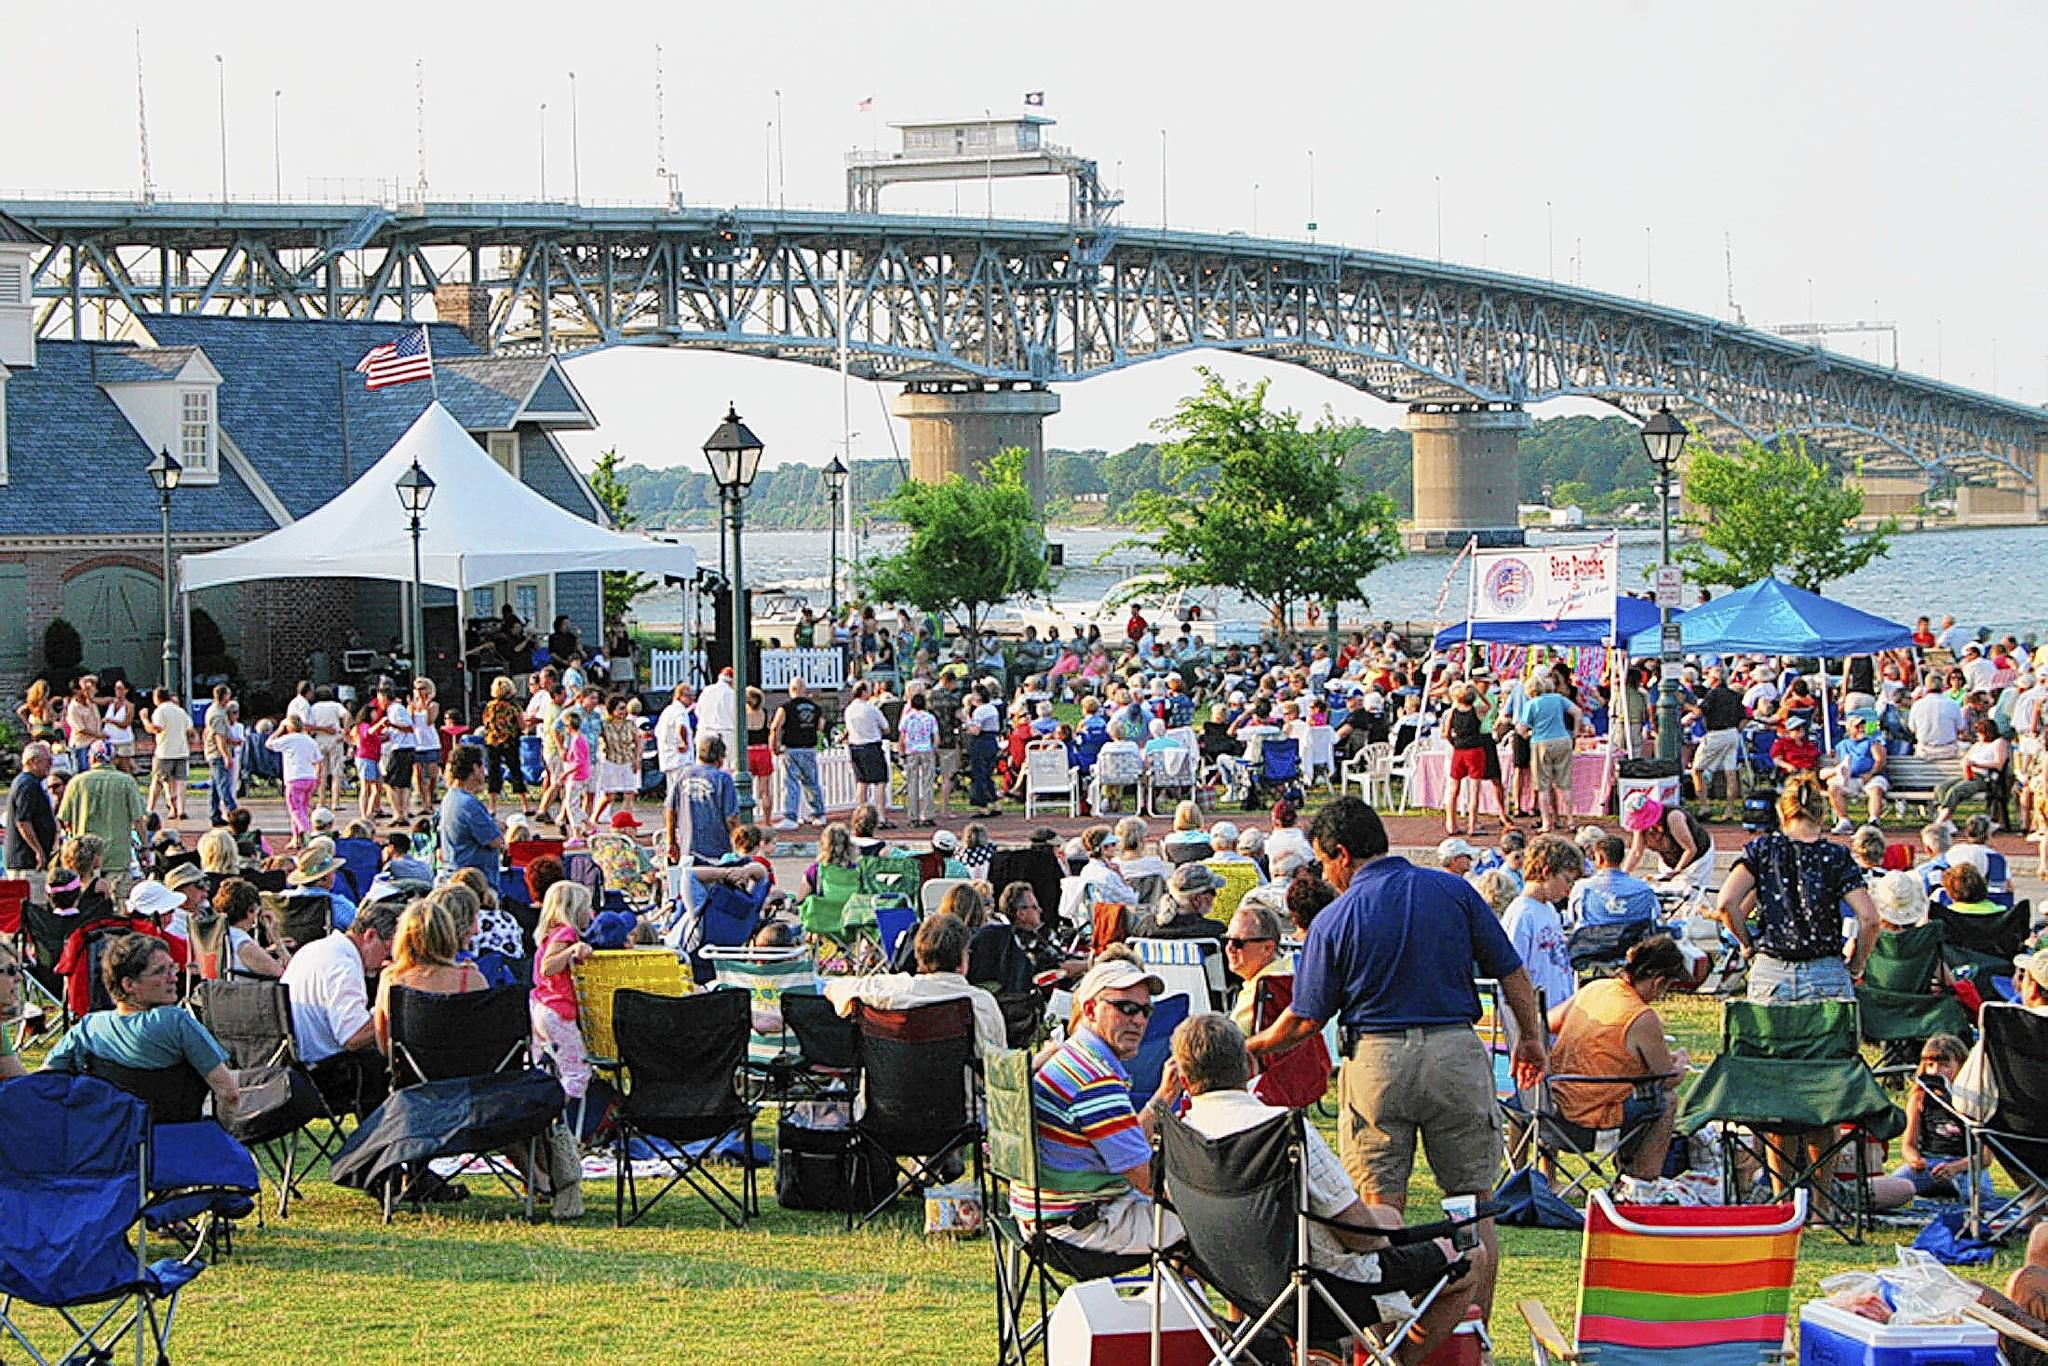 York County arts programs include the popular Shagging on the Riverwalk Beach Music Concert Series. Yorktown will present an arts fundraiser on Aug. 29 at the Freight Shed on Riverwalk Landing.